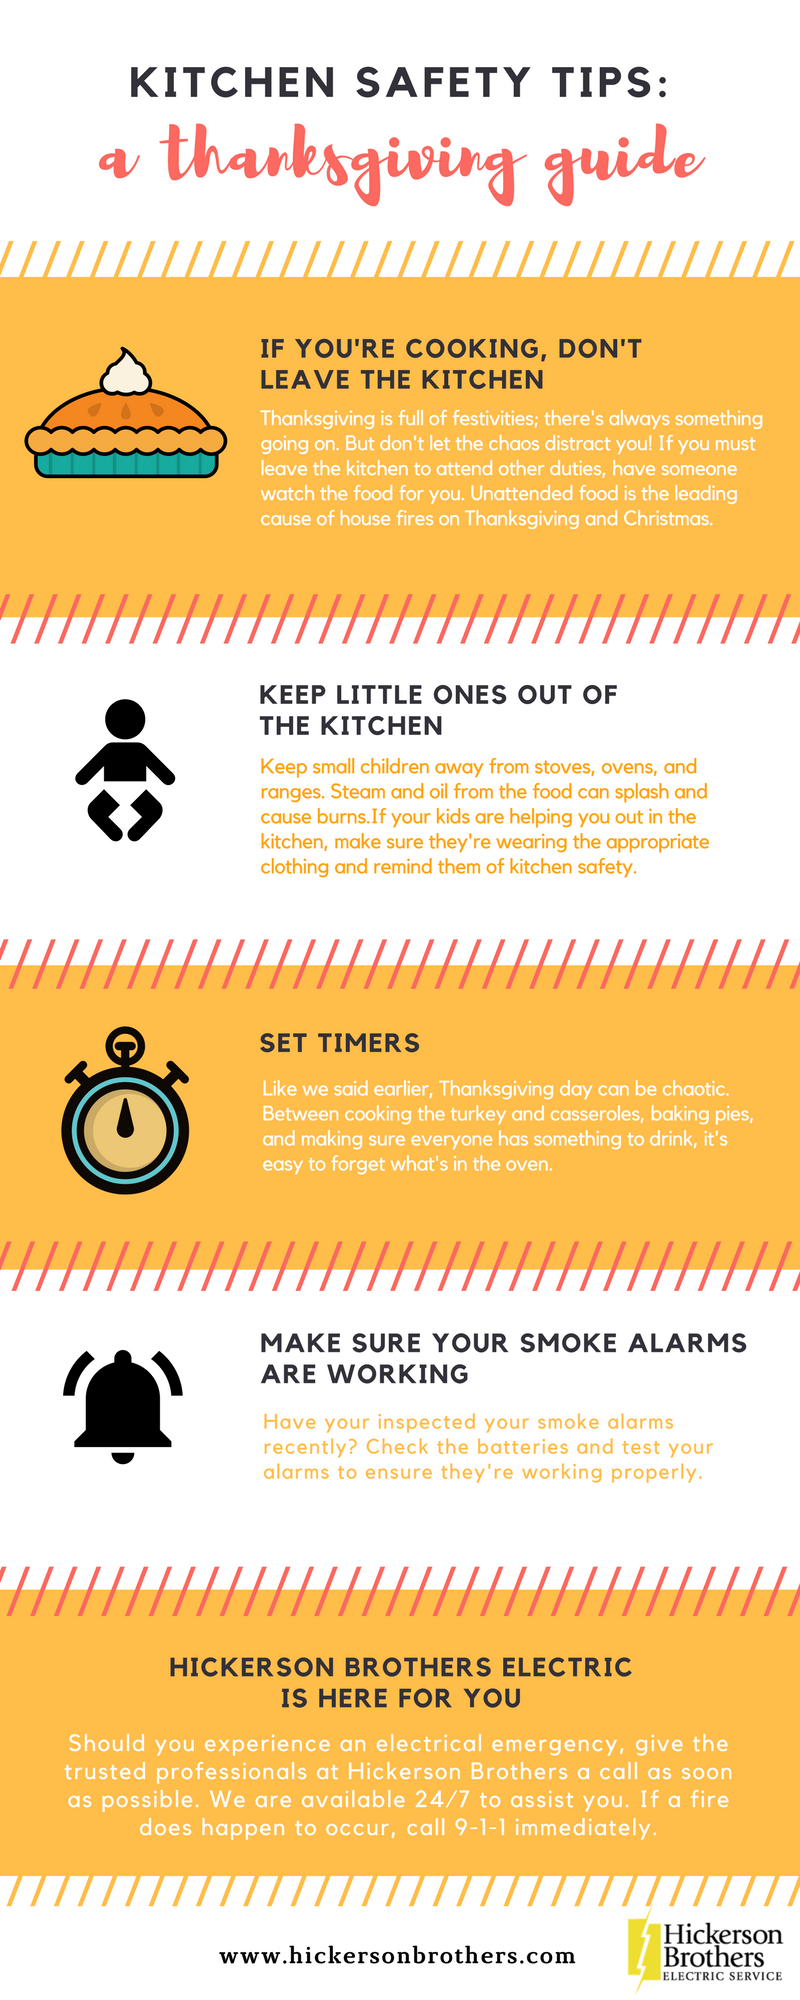 Kitchen Safety Tips: A Thanksgiving Guide - Hickerson